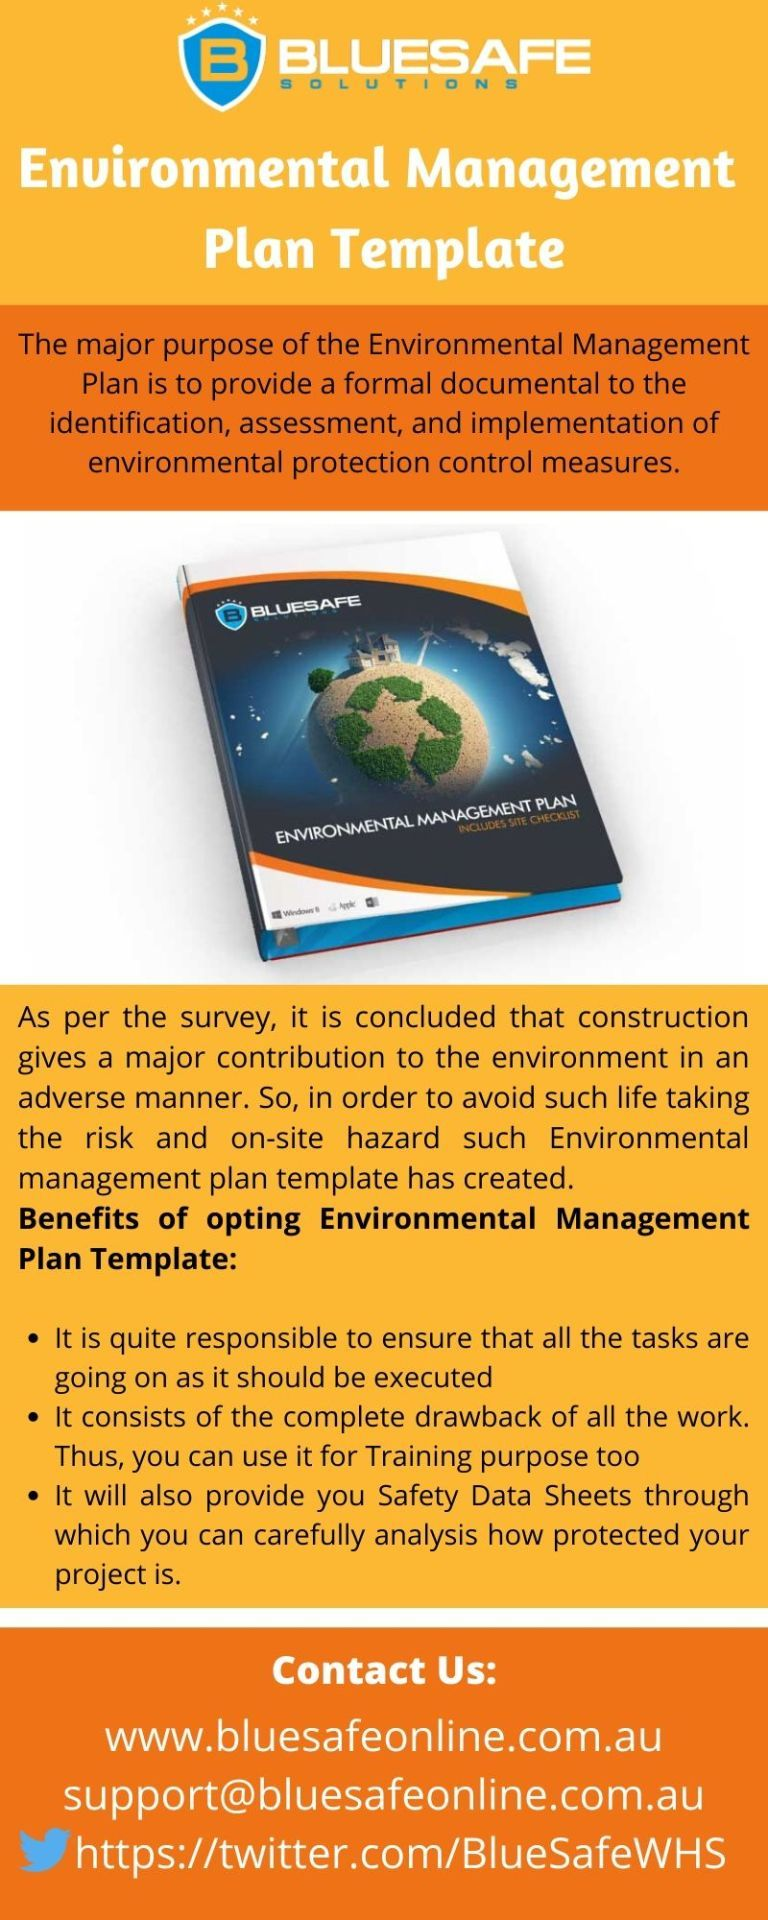 Management Plan Template to Avoid Components Which Harms